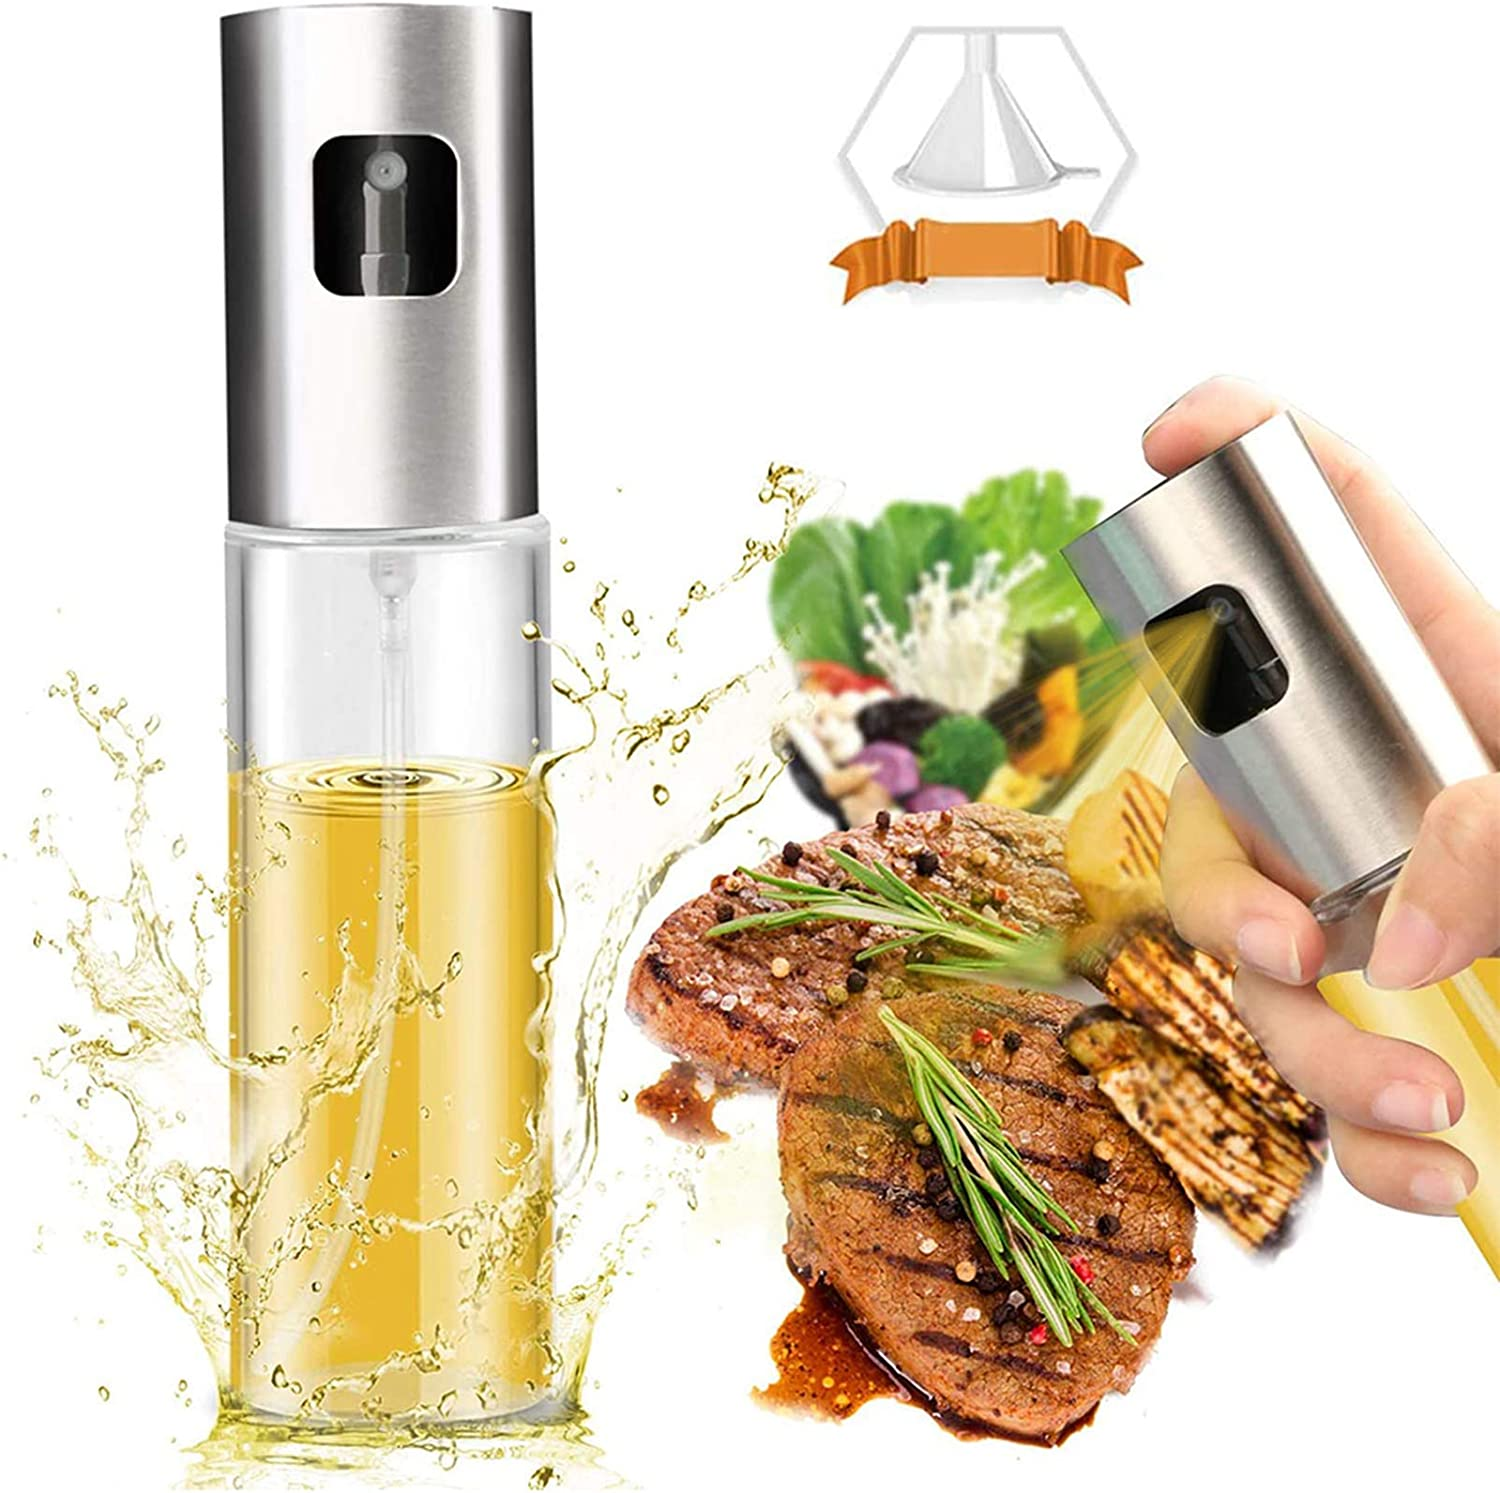 Olive Oil Sprayer Dispenser for Cooking, Food-Grade Glass Oil Spray Bottle Oil Dispenser,Olive Oil Sprayer for BBQ/Making Salad/Baking/Frying Kitchen